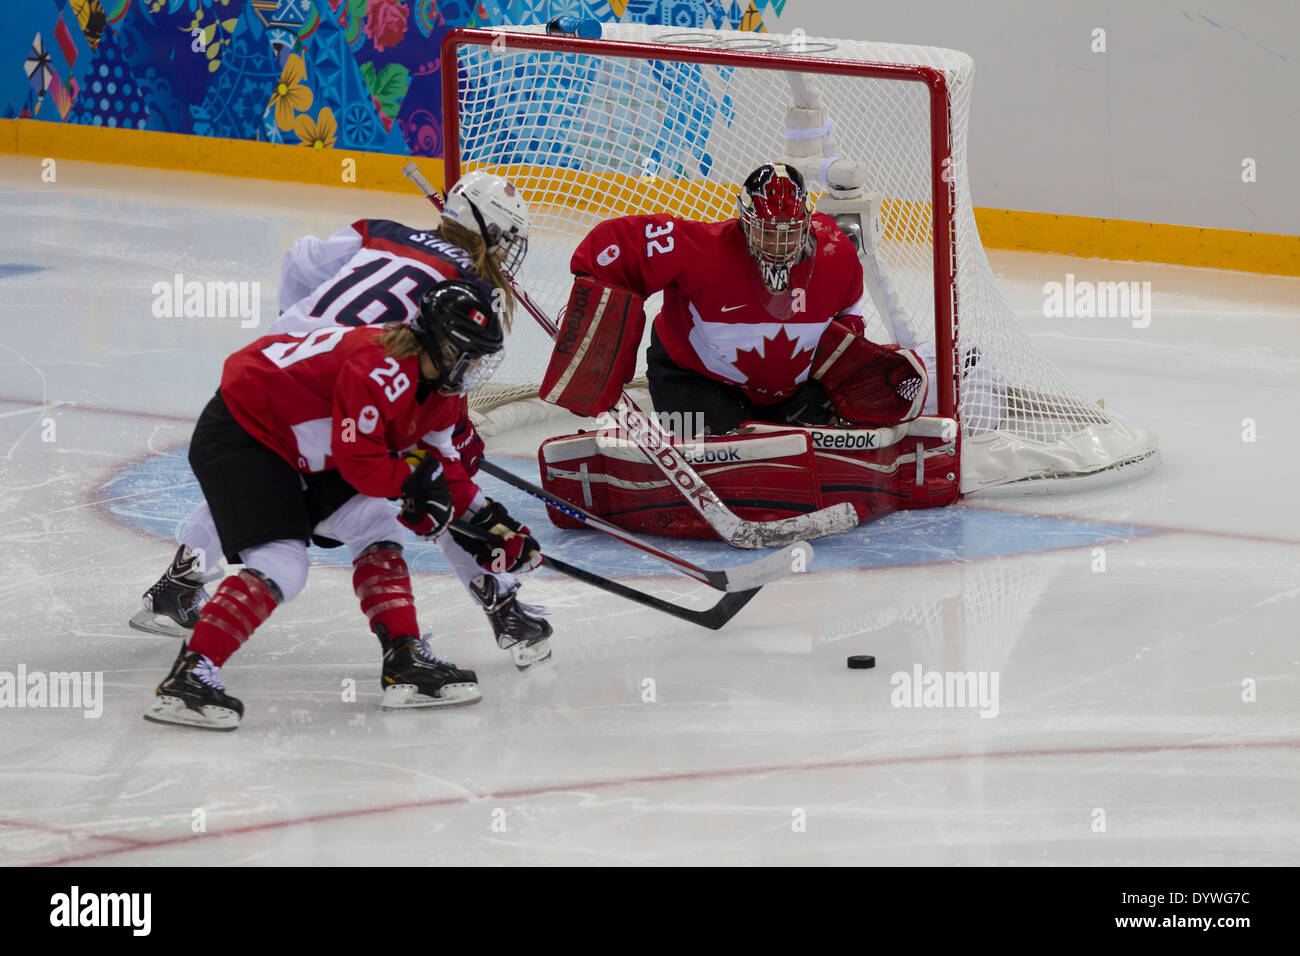 Charline Labonte Canadian goalie, USA-Canada Women's Ice Hockey at the Olympic Winter Games, Sochi 2014 - Stock Image